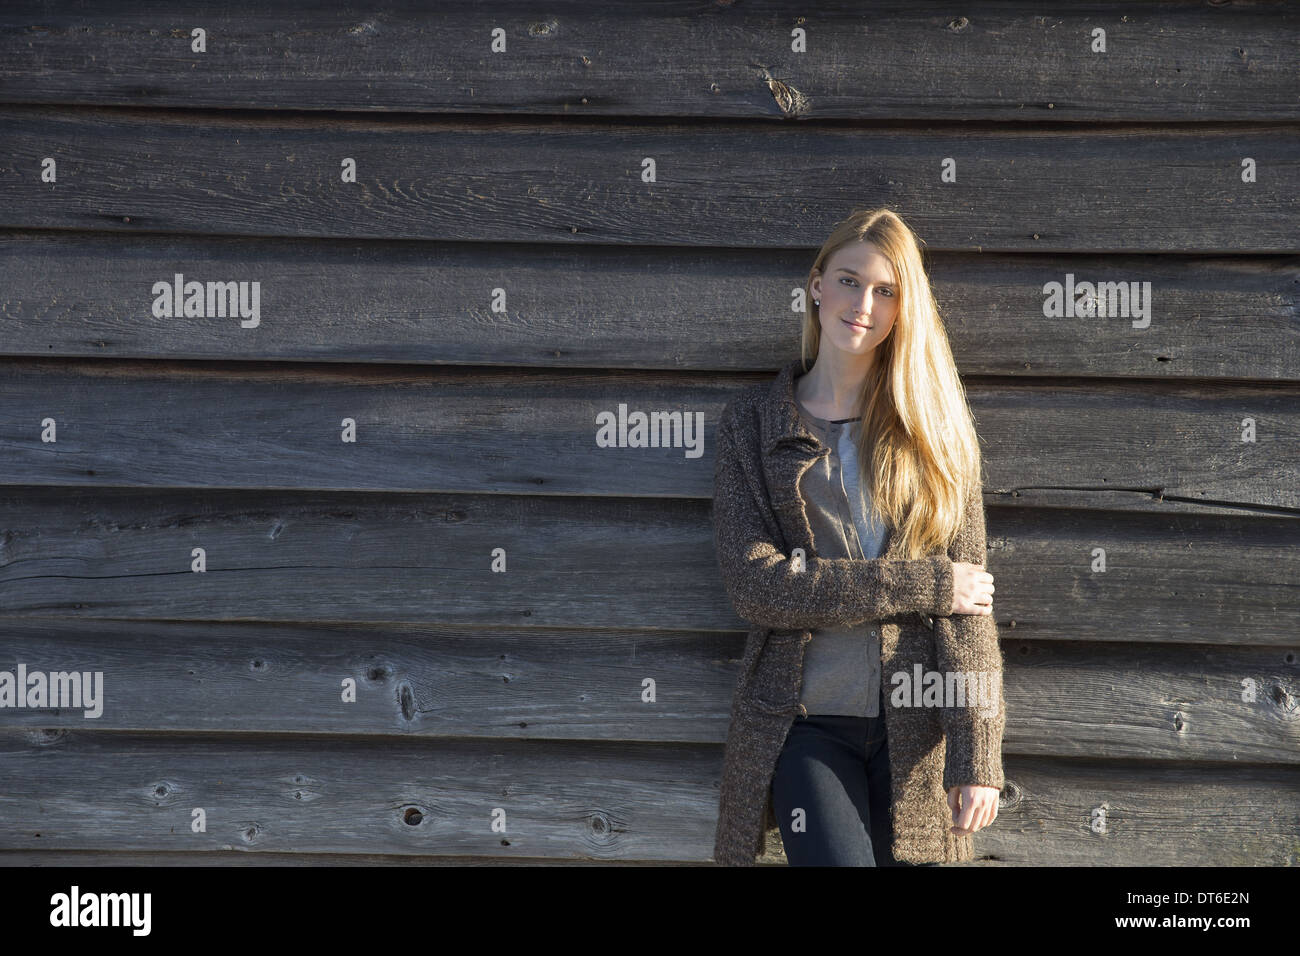 A young woman leaning against the wooden wall of a barn wearing a long knitted coat. Stock Photo